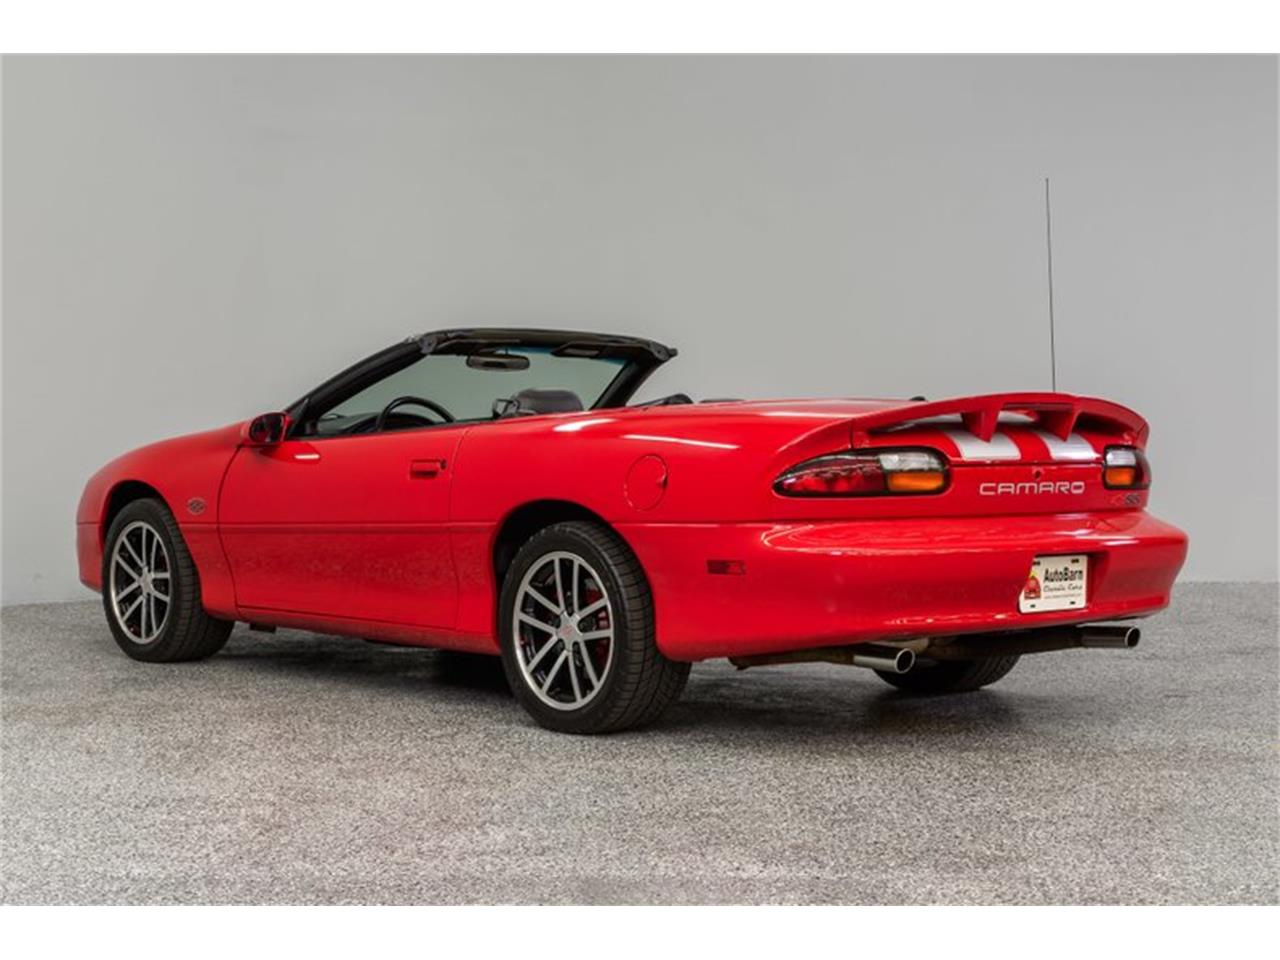 2002 Chevrolet Camaro for sale in Concord, NC – photo 3